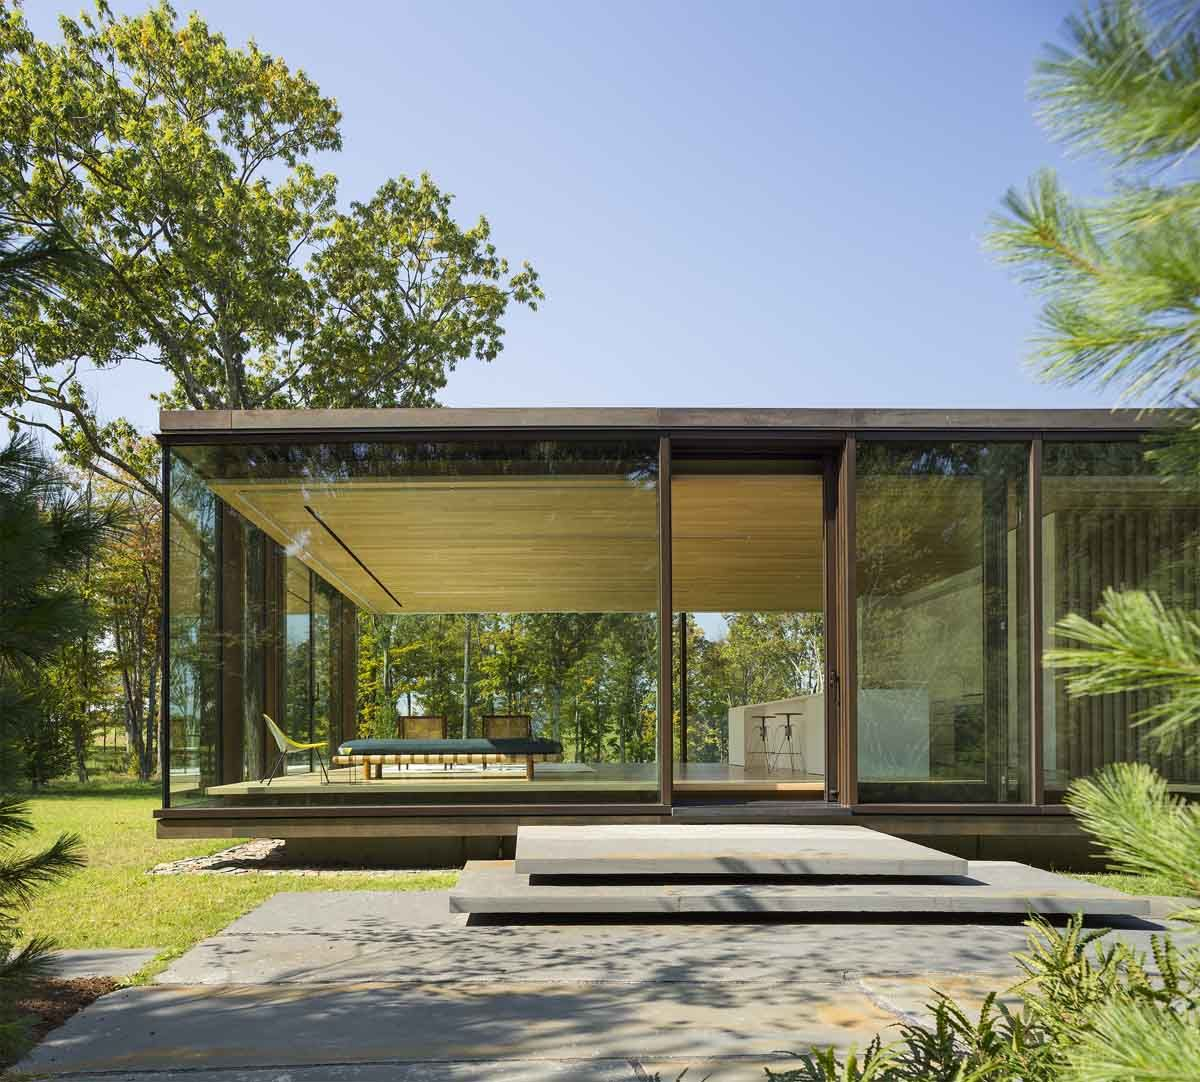 Lm guest house by desai chia architecture in dutchess county new york usa a